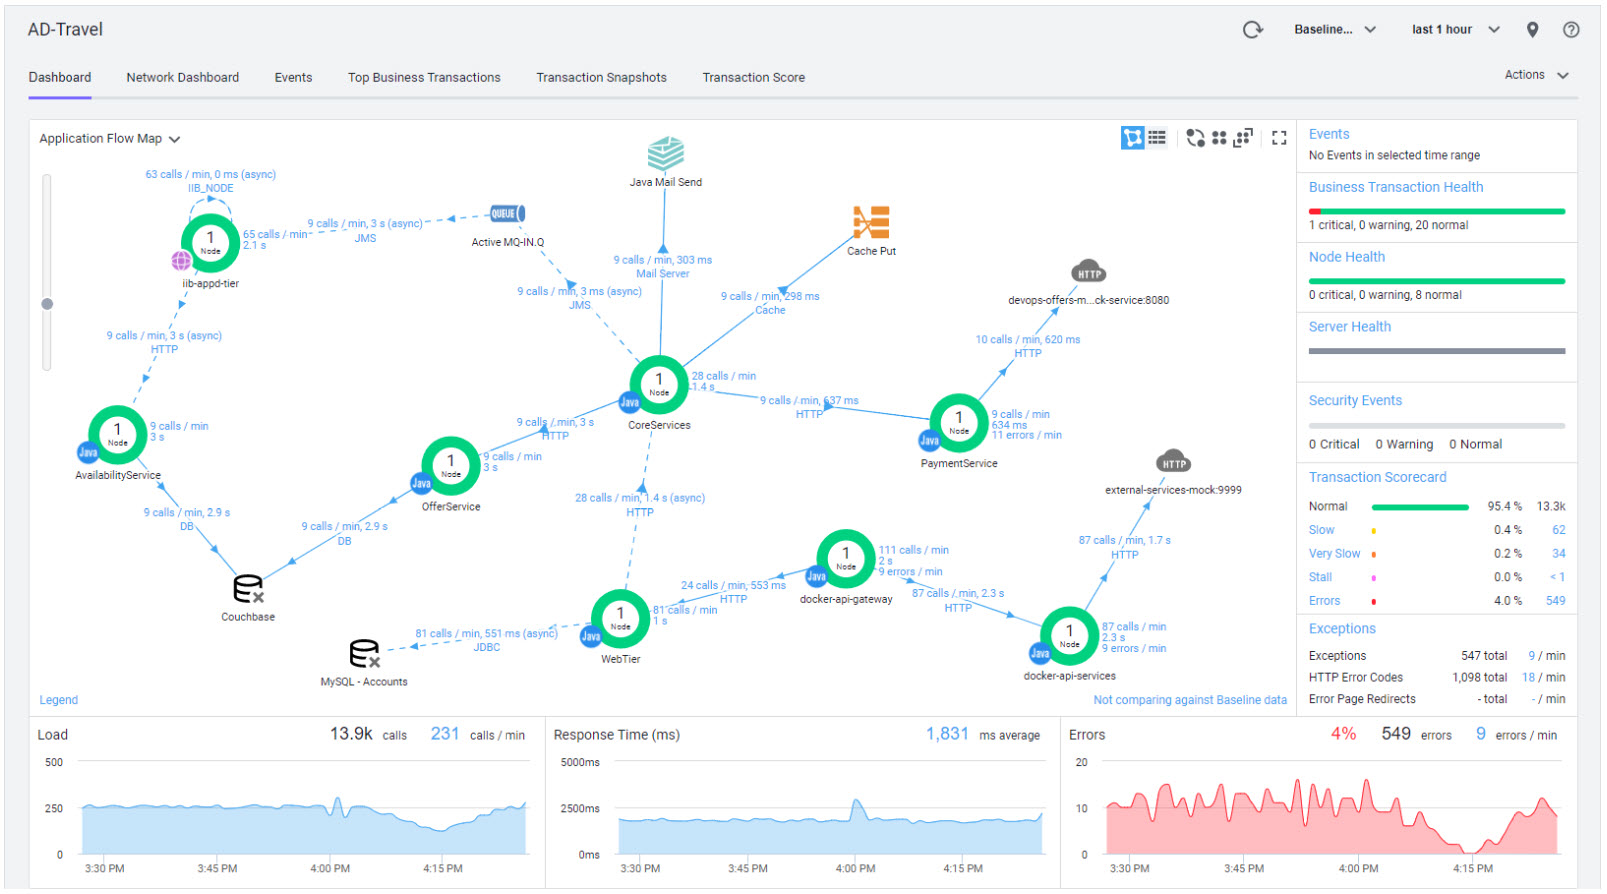 The AD-Travel flow map dashboard displays graphs for load, response time (ms), and errors. It also displays events, business transaction health, security events, and a transaction scorecard.